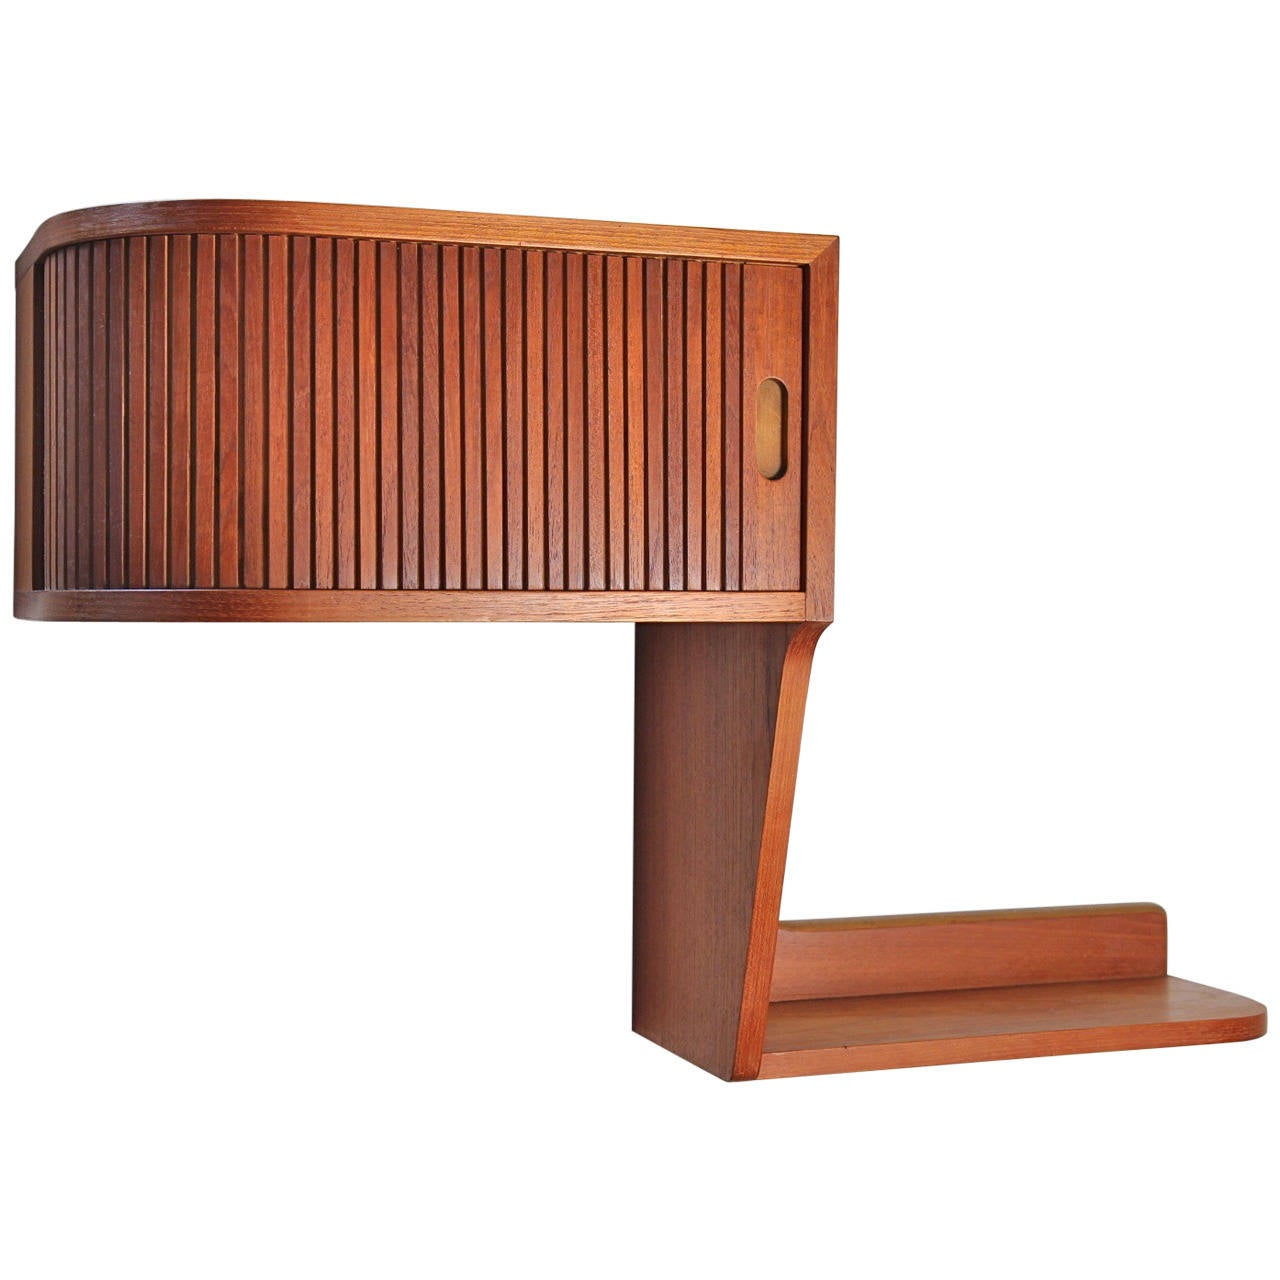 Danish Modern Teak Floating Shelf At 1stdibs